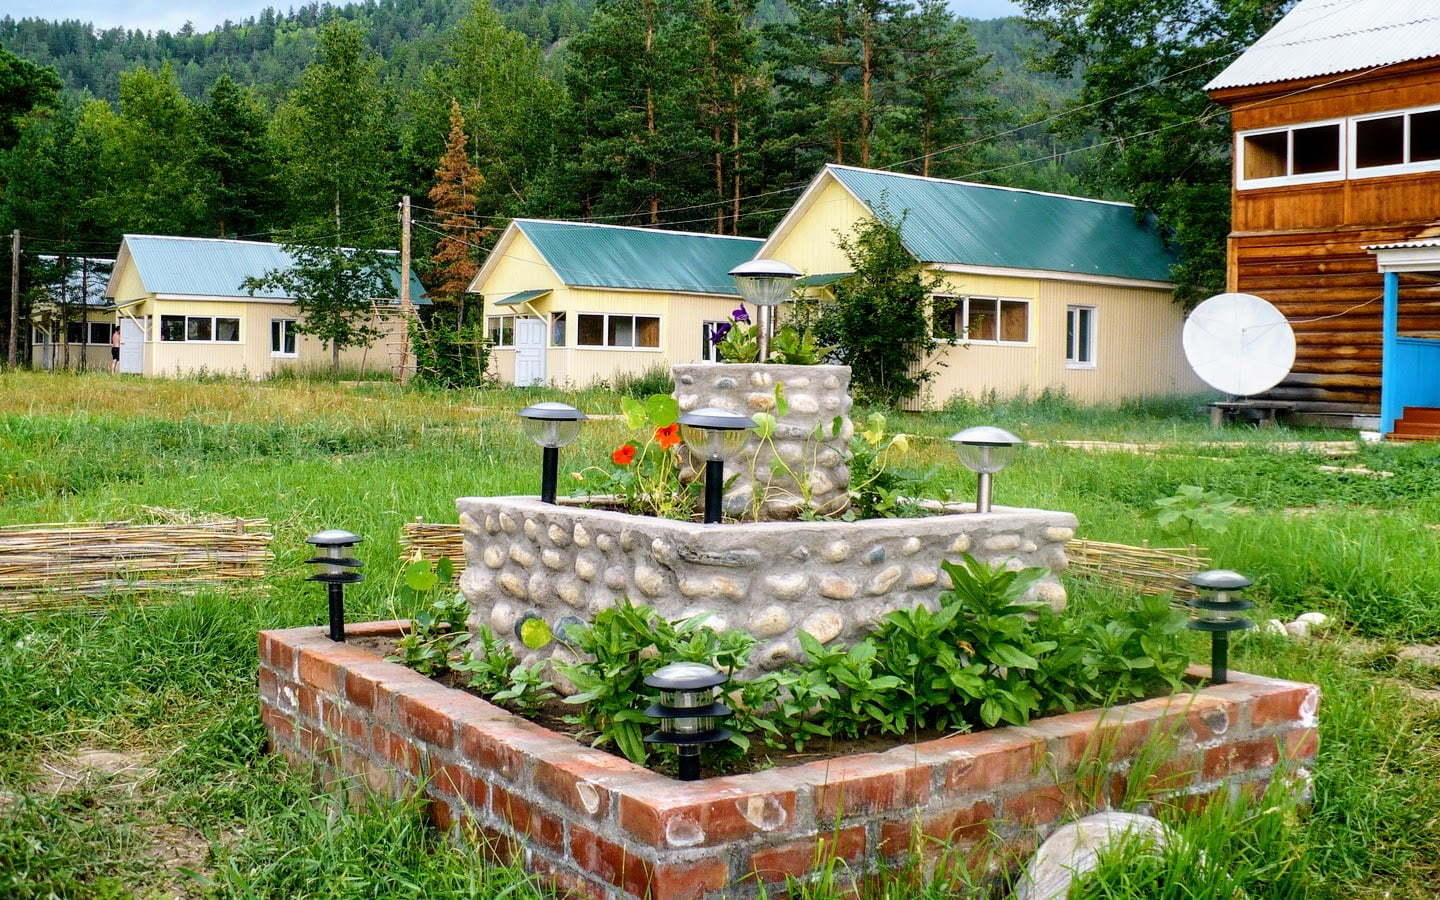 Umkhey Resort in Kurumkansky District of Buryatia